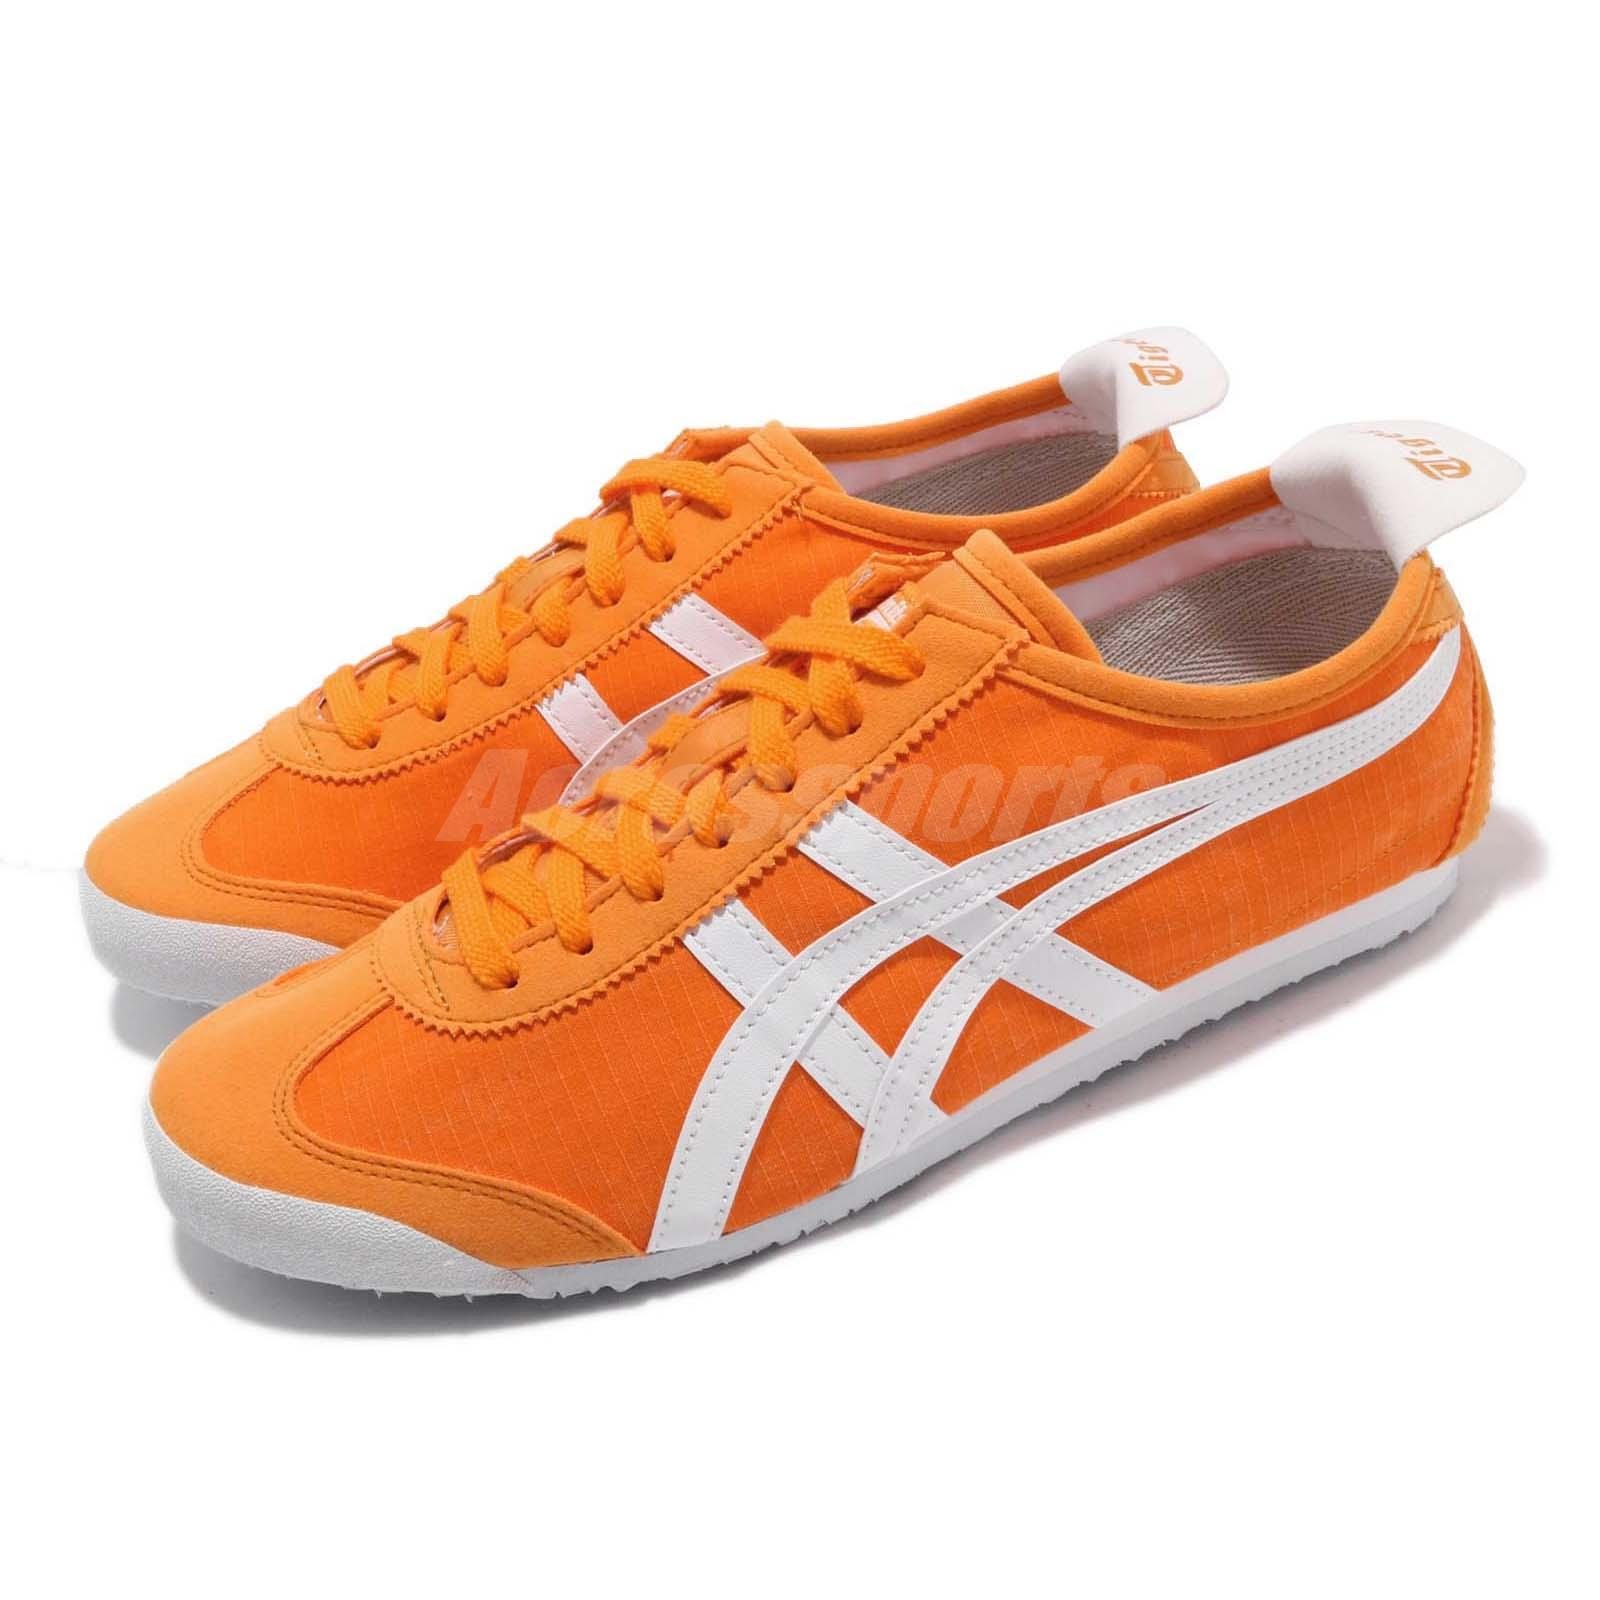 uk availability a66db 0e1da Details about Asics Onitsuka Tiger Mexico 66 Citrus Orange White Men Women  Shoes 1183A223-800